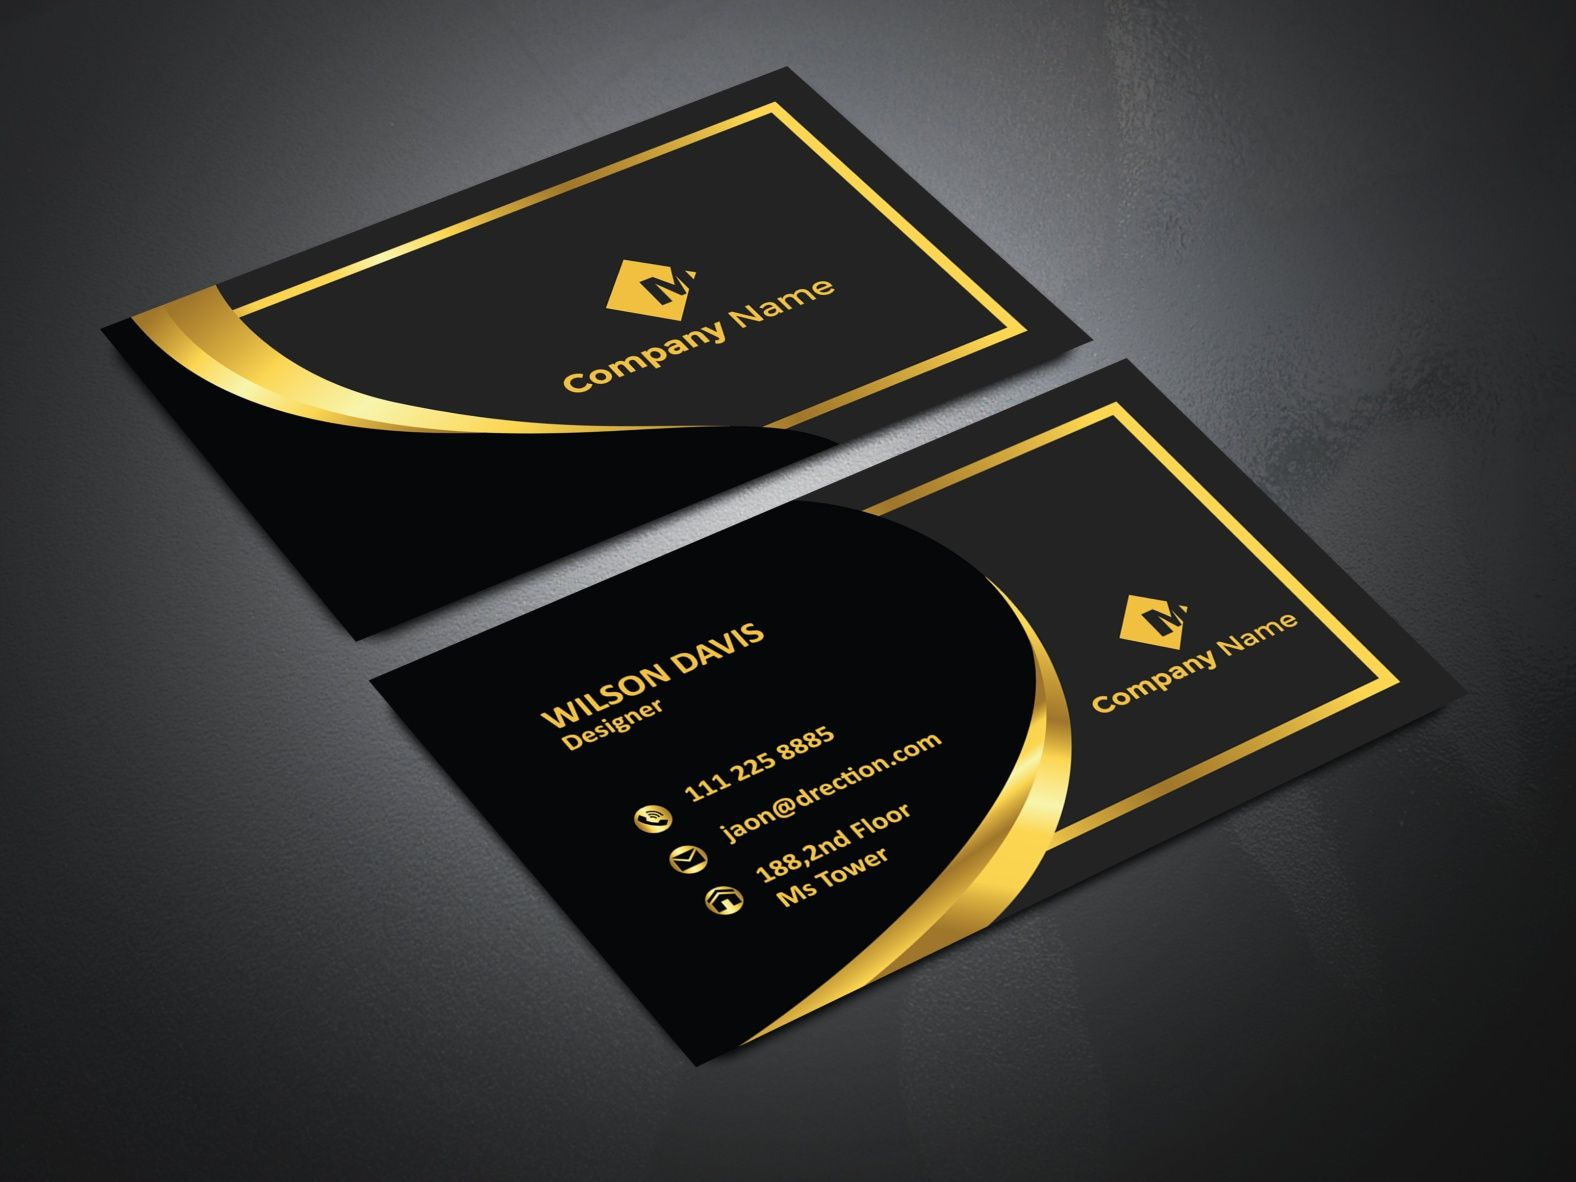 Black And Gold Luxury Business Card Design Business Card Design Luxury Business Cards Gold Business Card